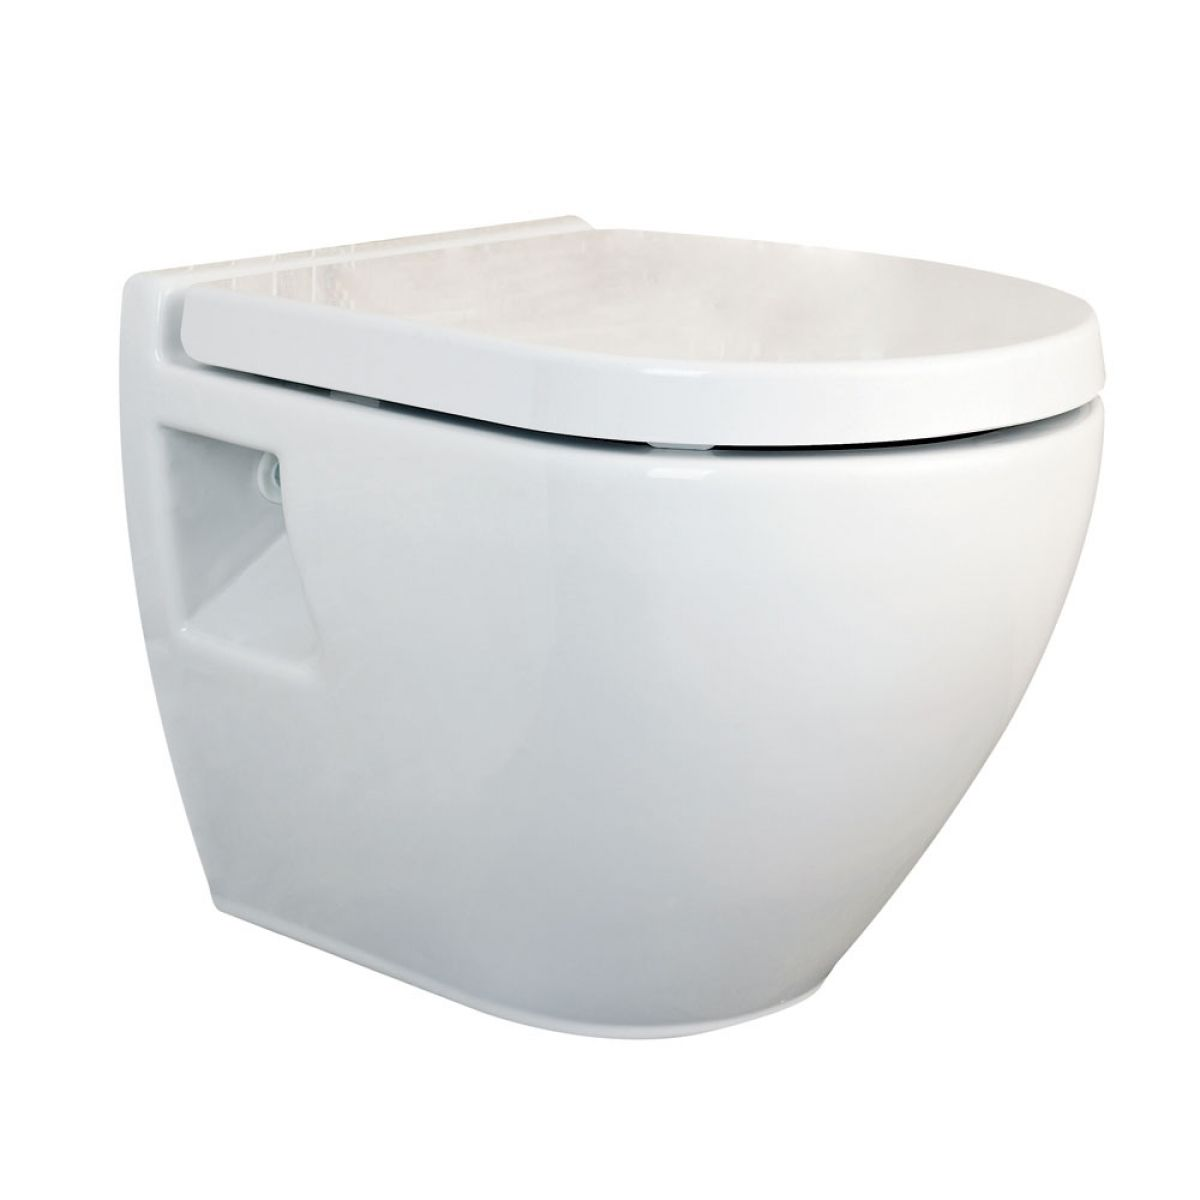 Premier Marlow Round Wall Hung Toilet with Soft Close Seat